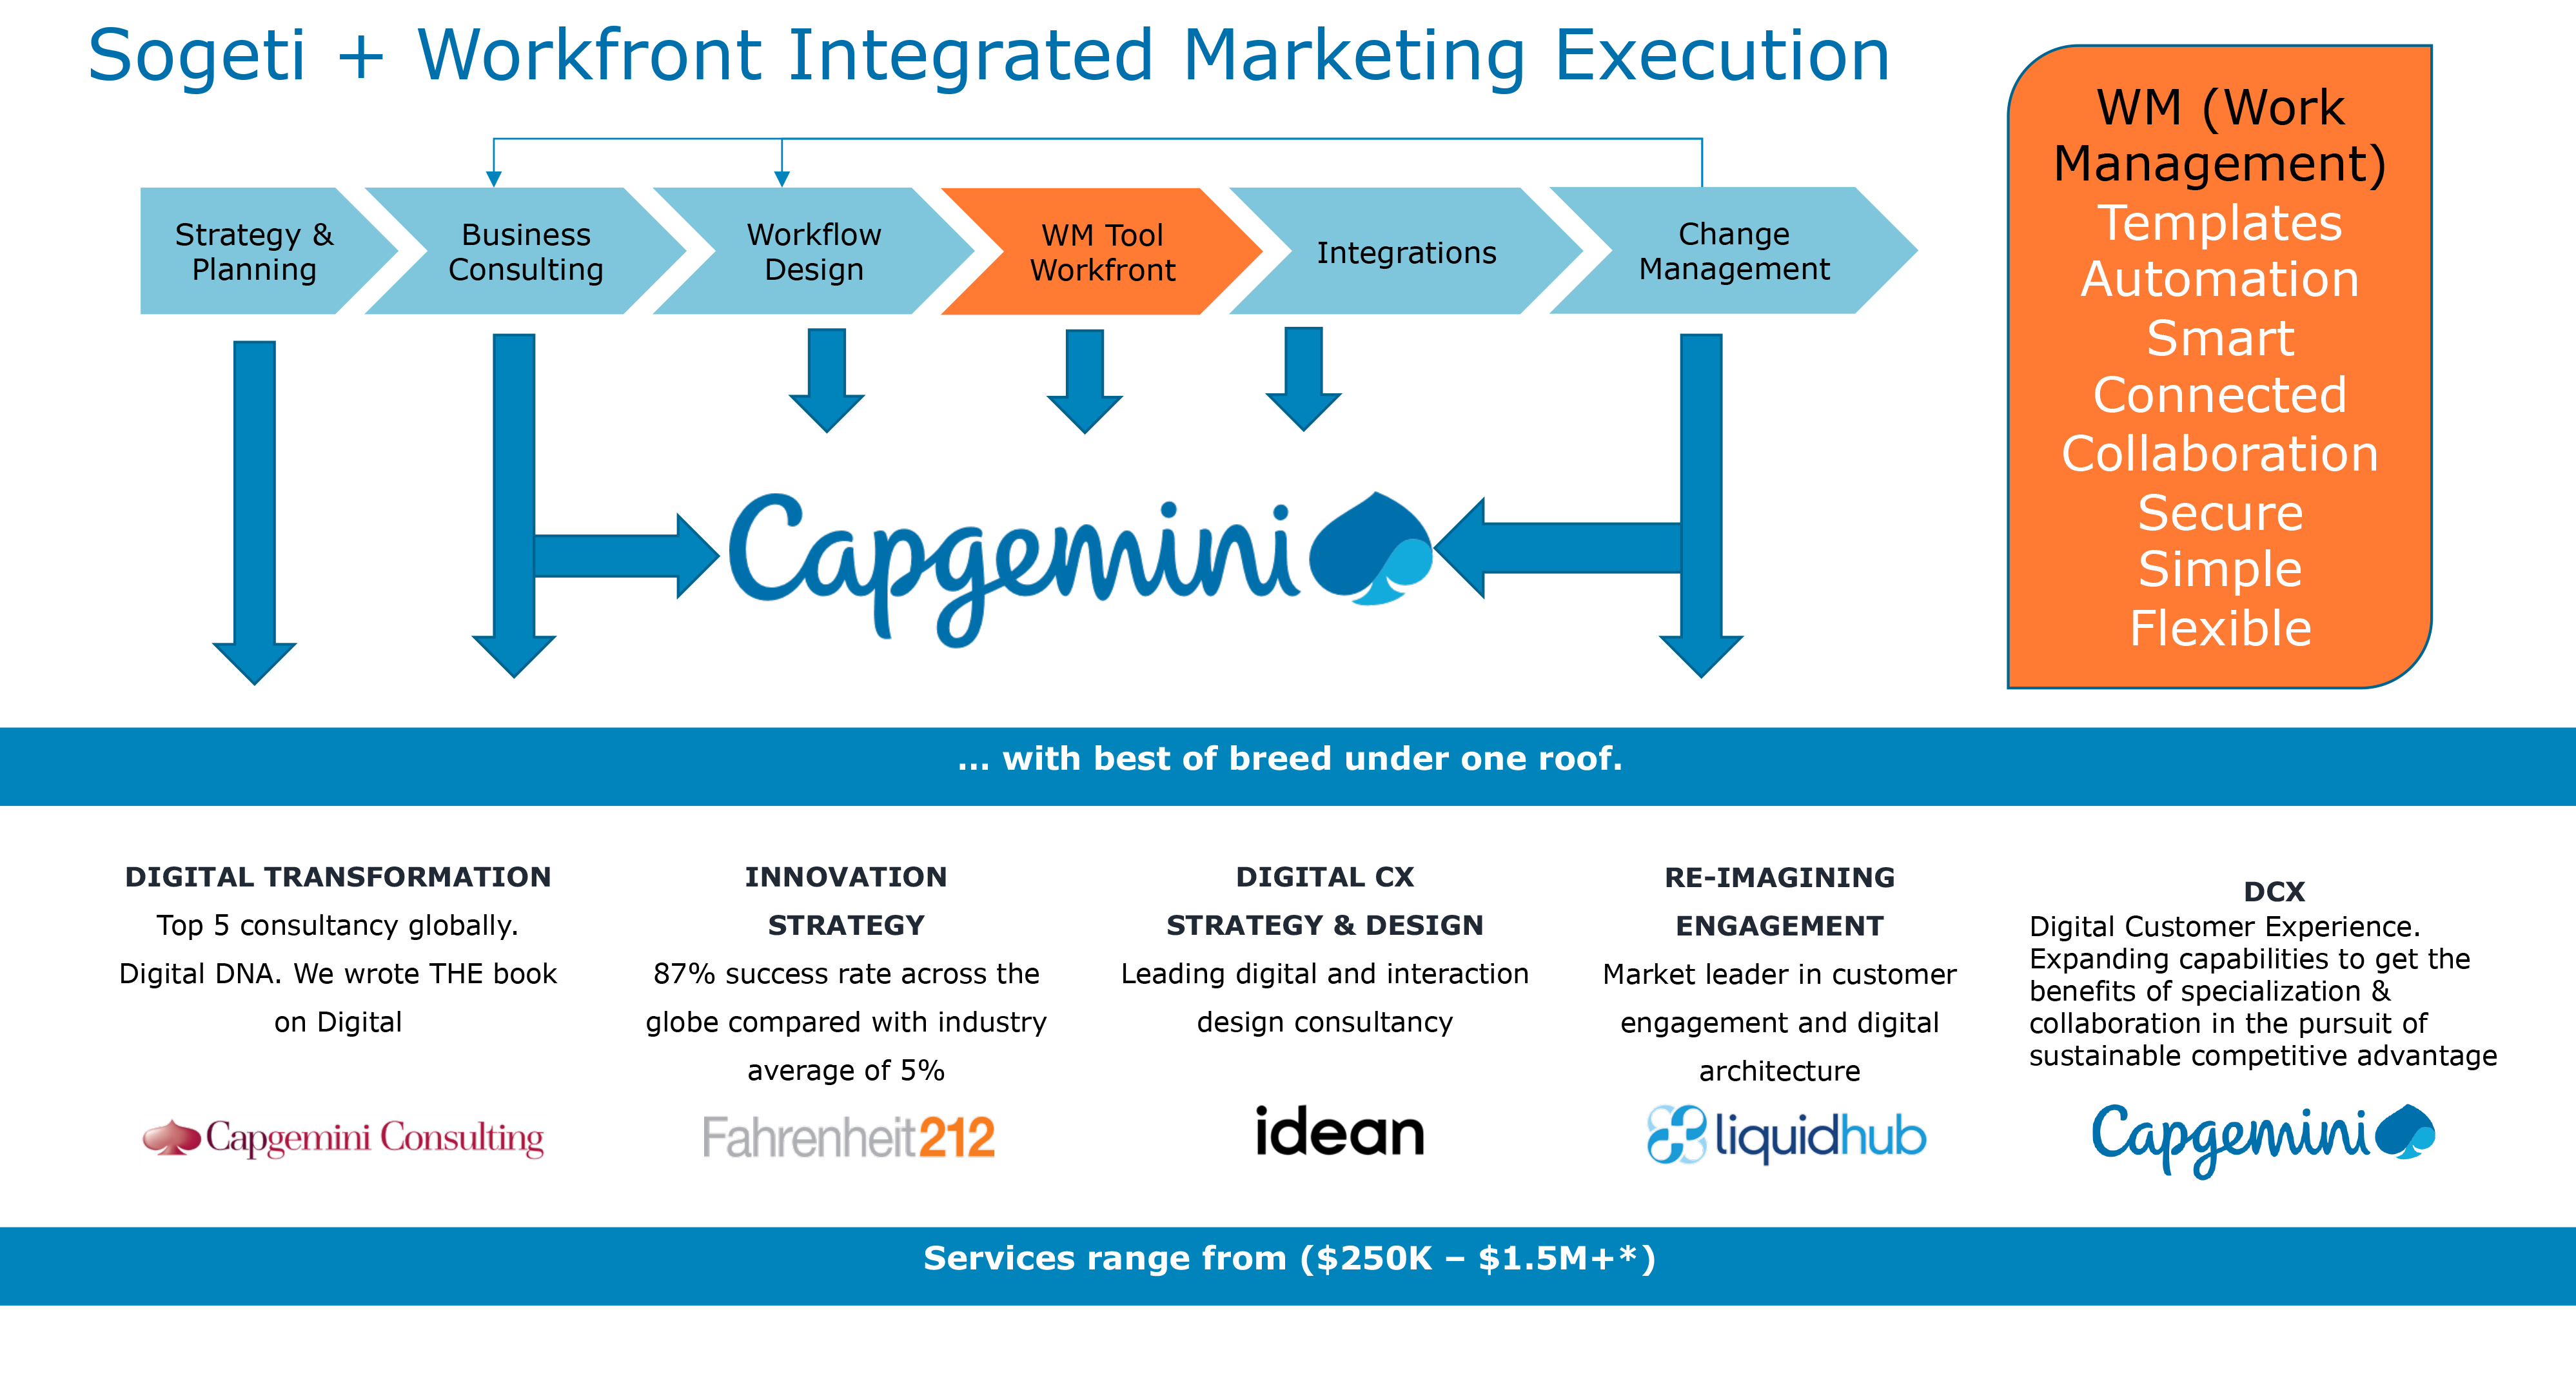 Capgemini and Workfront solution image-1